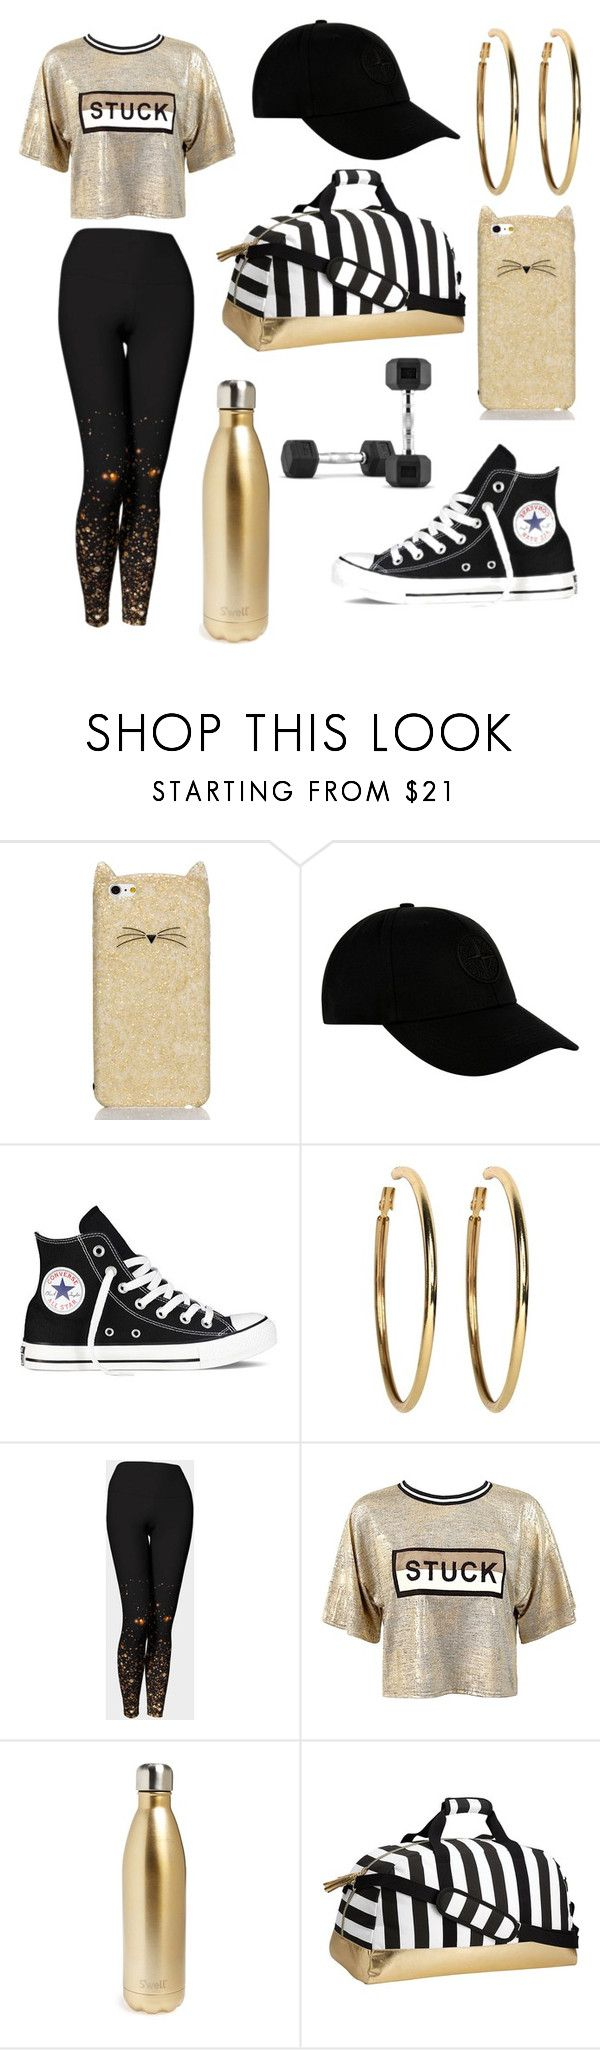 """""""Work Hard, Play Hard"""" by clevver ❤ liked on Polyvore featuring Kate Spade, STONE ISLAND, Converse, Kenneth Jay Lane, Sans Souci, S'well and PBteen"""